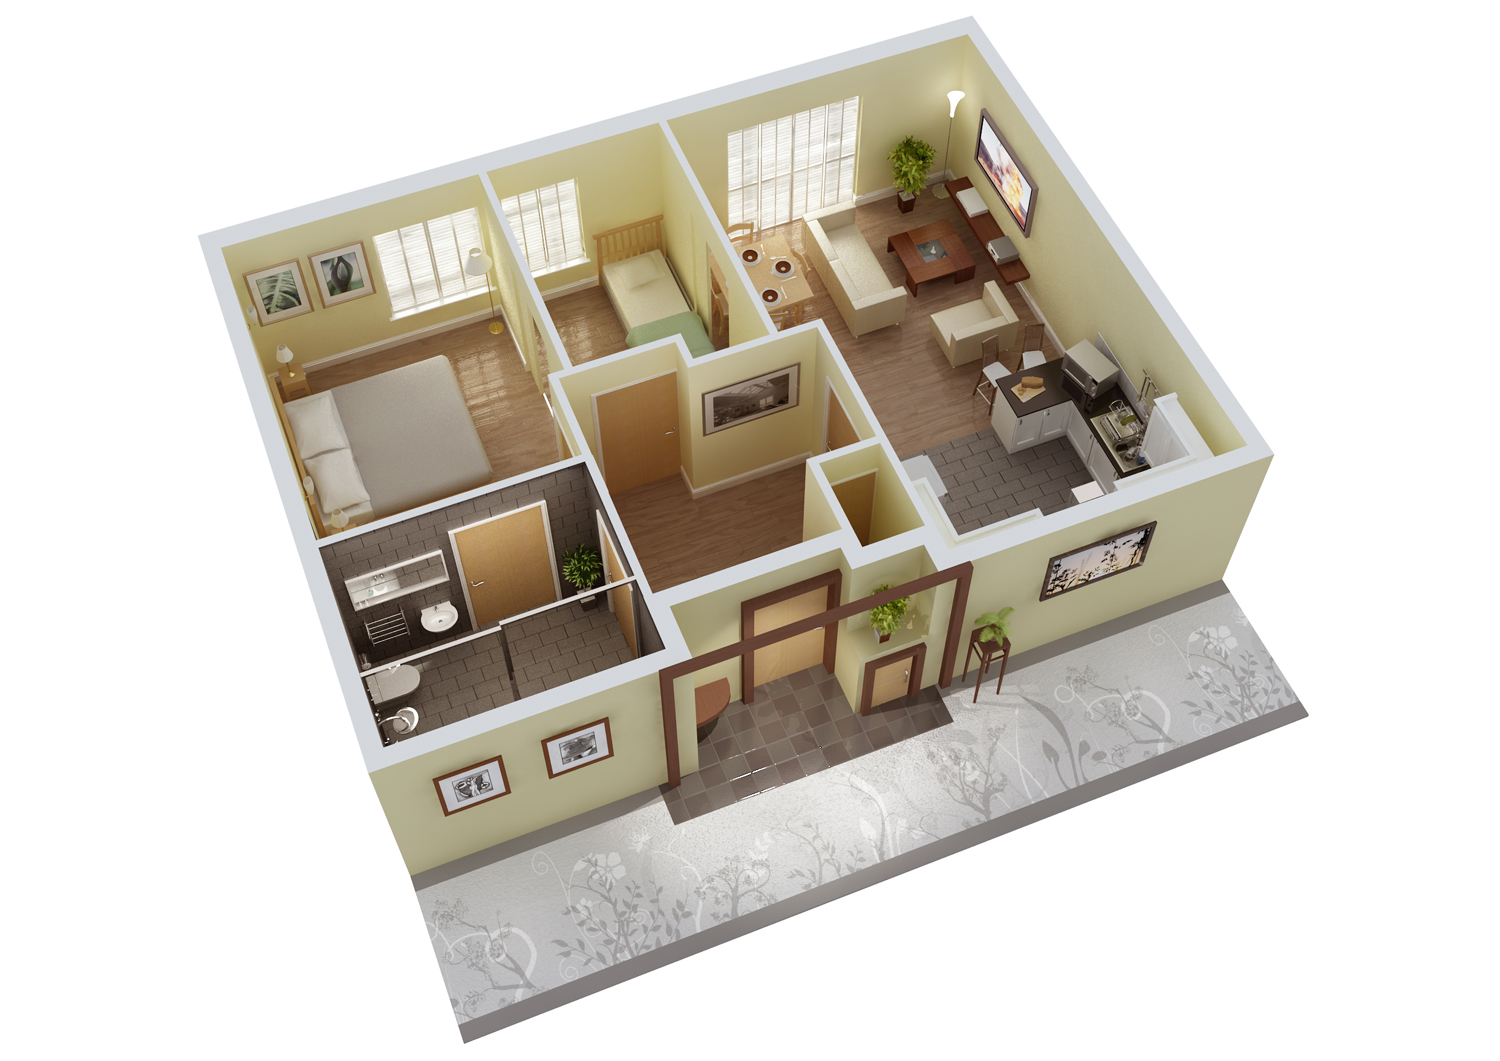 Mathematics resources project 3d floor plan for Floorplans 3d